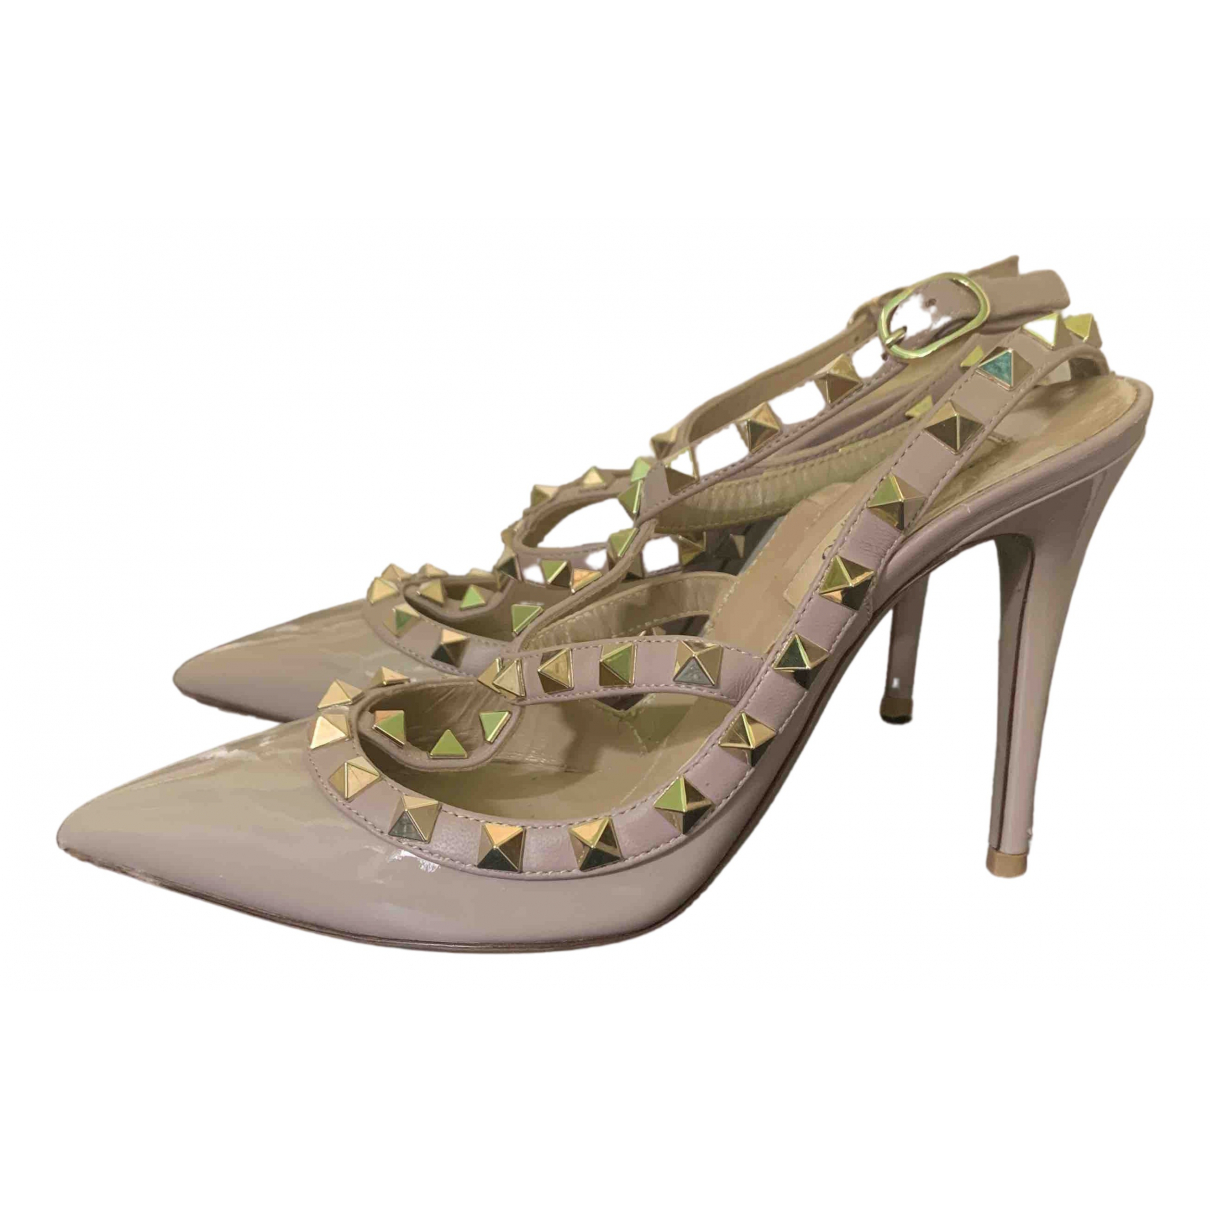 Valentino Garavani Rockstud Beige Patent leather Sandals for Women 35 EU